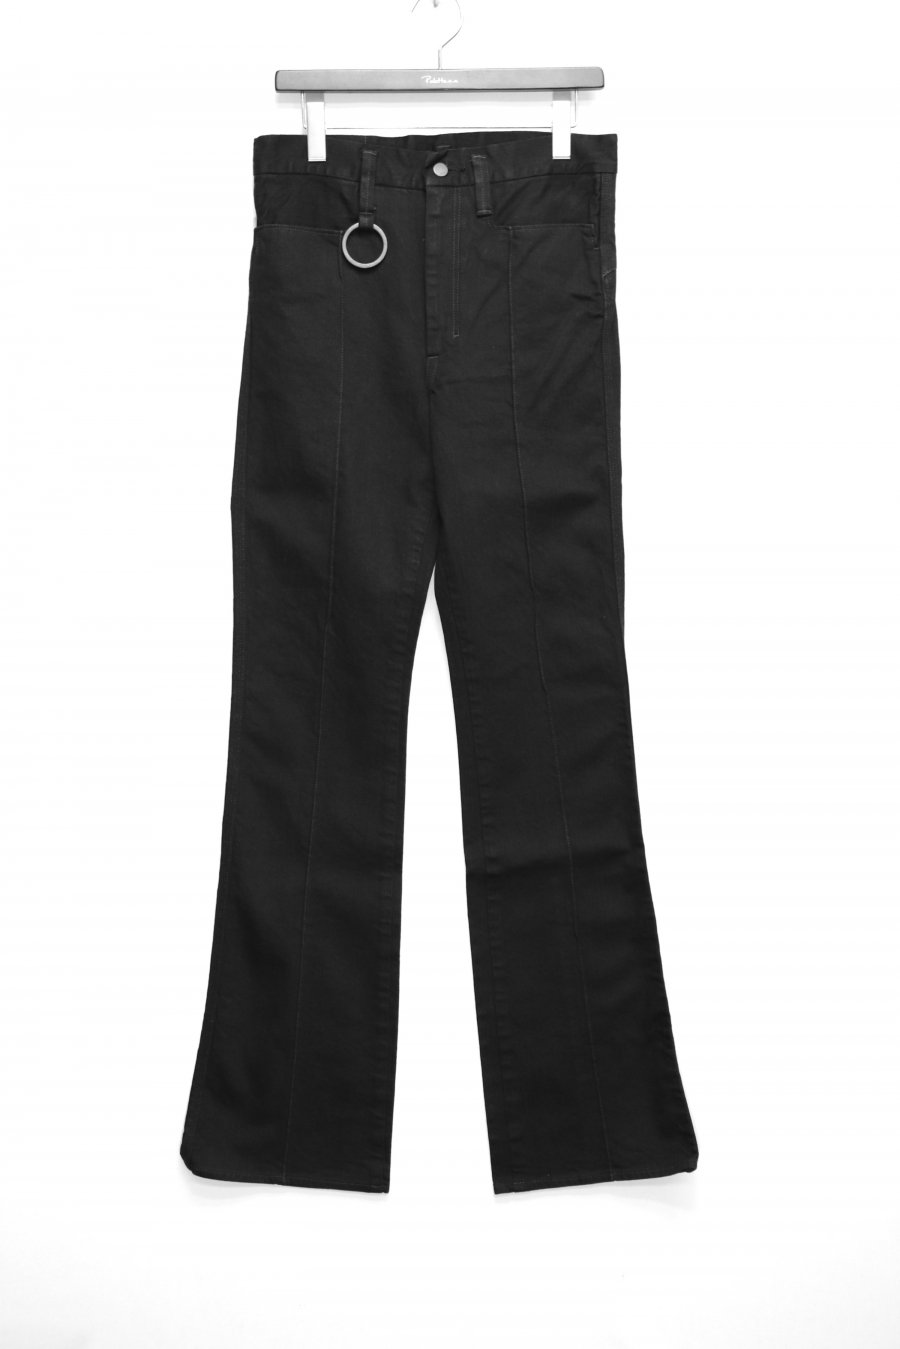 [ー]MINUS SIGUNATURE DENIM TROUSERS(FADED BLACK FLARE)<img class='new_mark_img2' src='https://img.shop-pro.jp/img/new/icons15.gif' style='border:none;display:inline;margin:0px;padding:0px;width:auto;' />